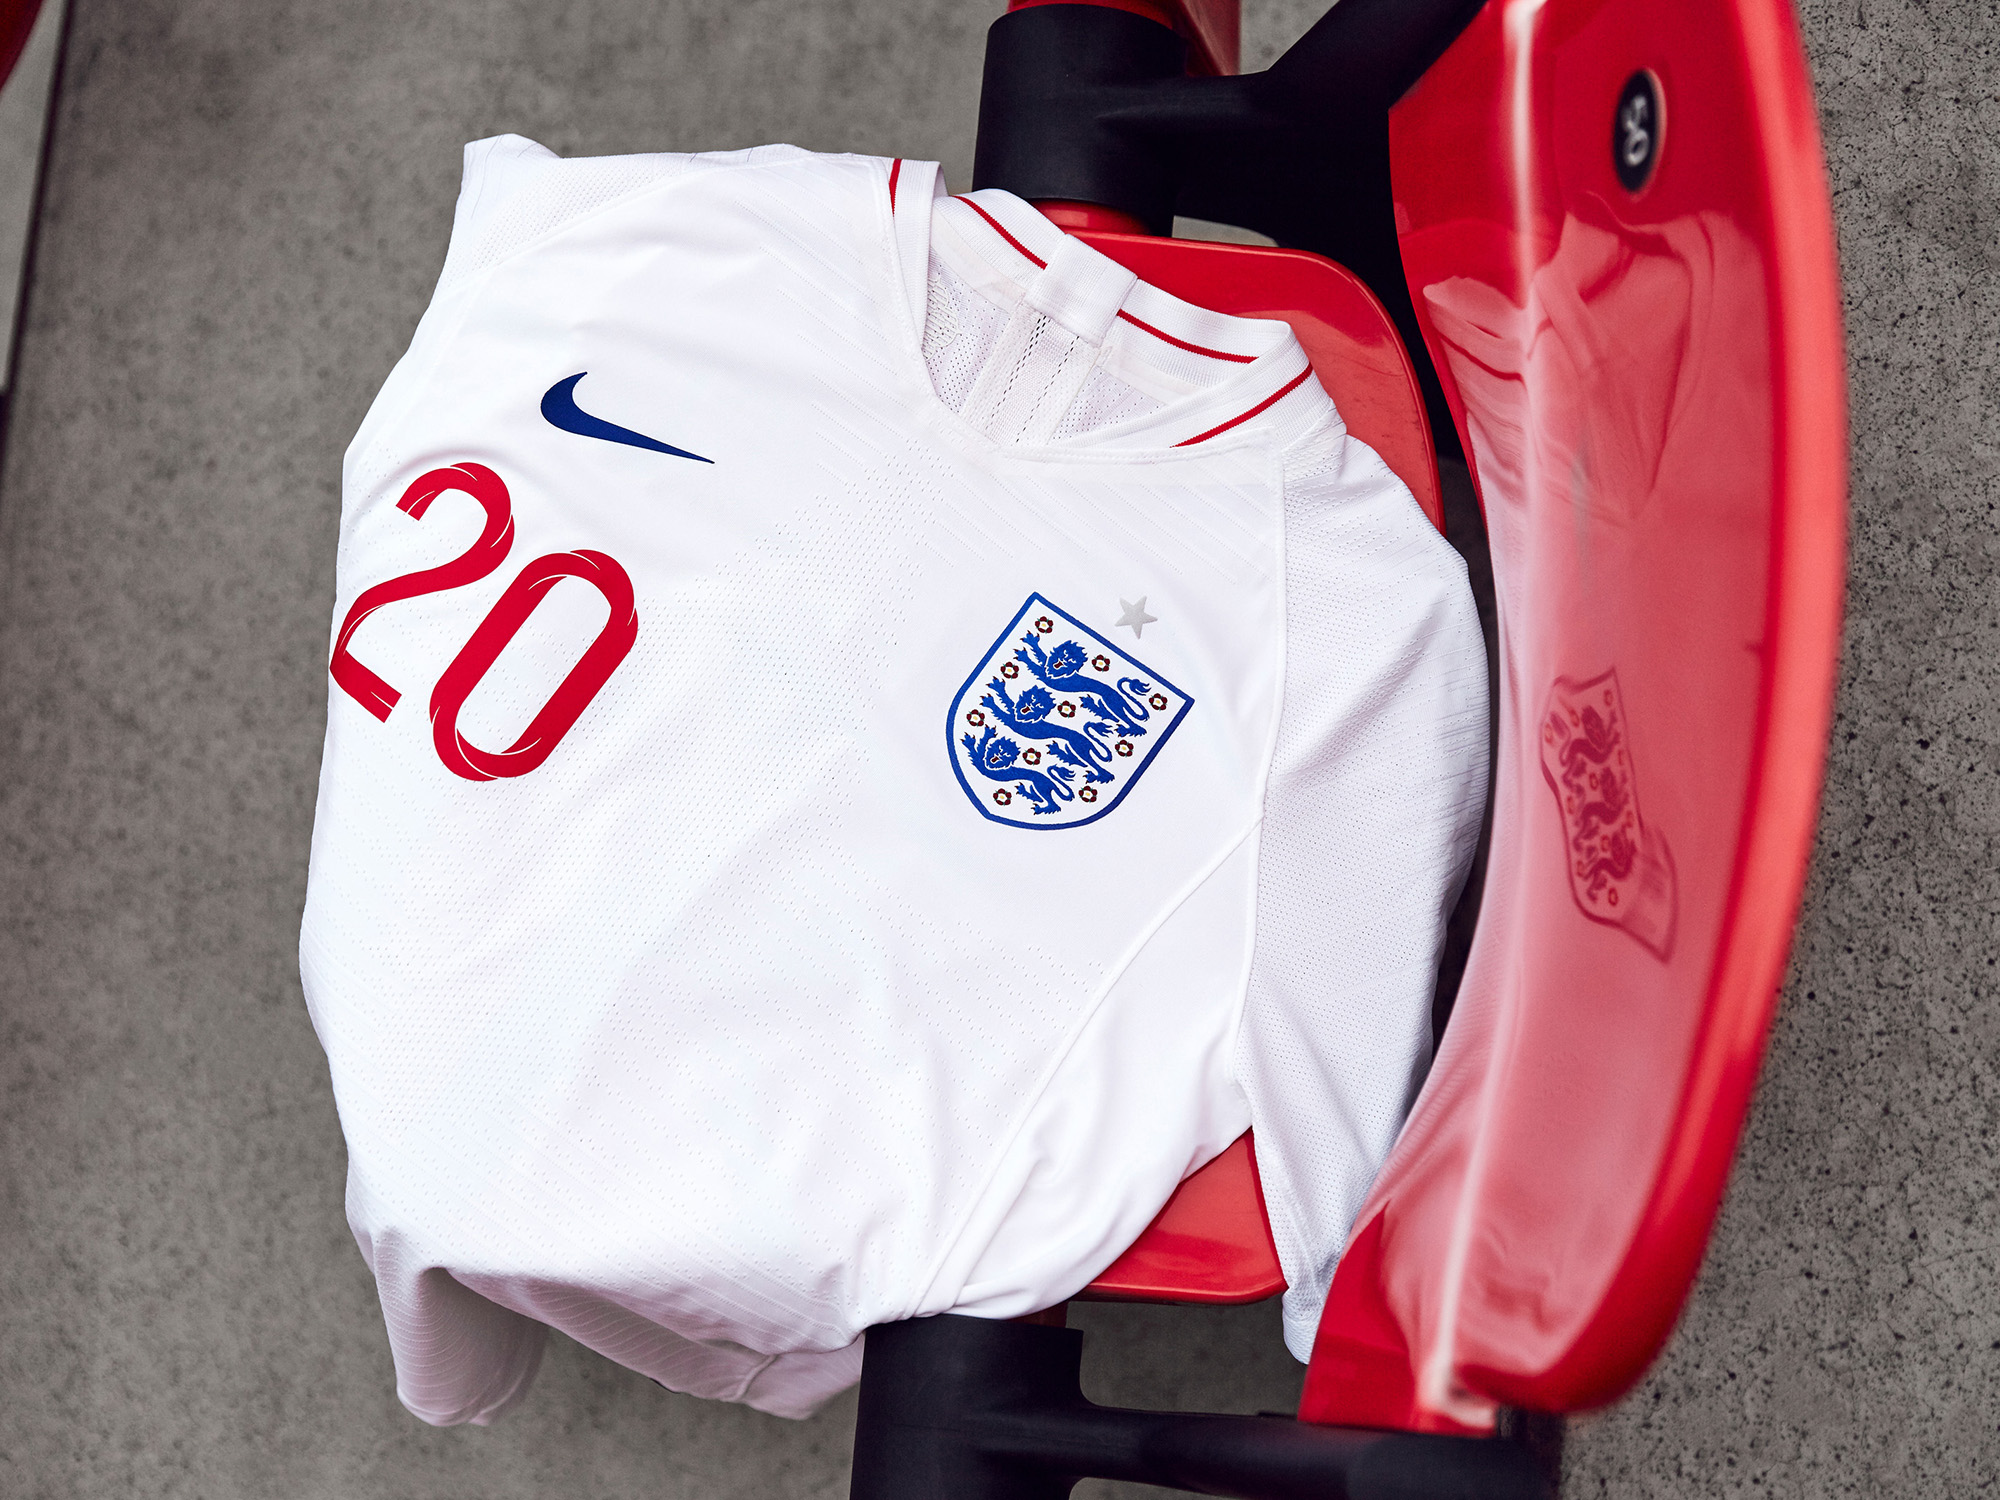 Nike-News-Football-Soccer-England-National-Team-Kit-9_77380